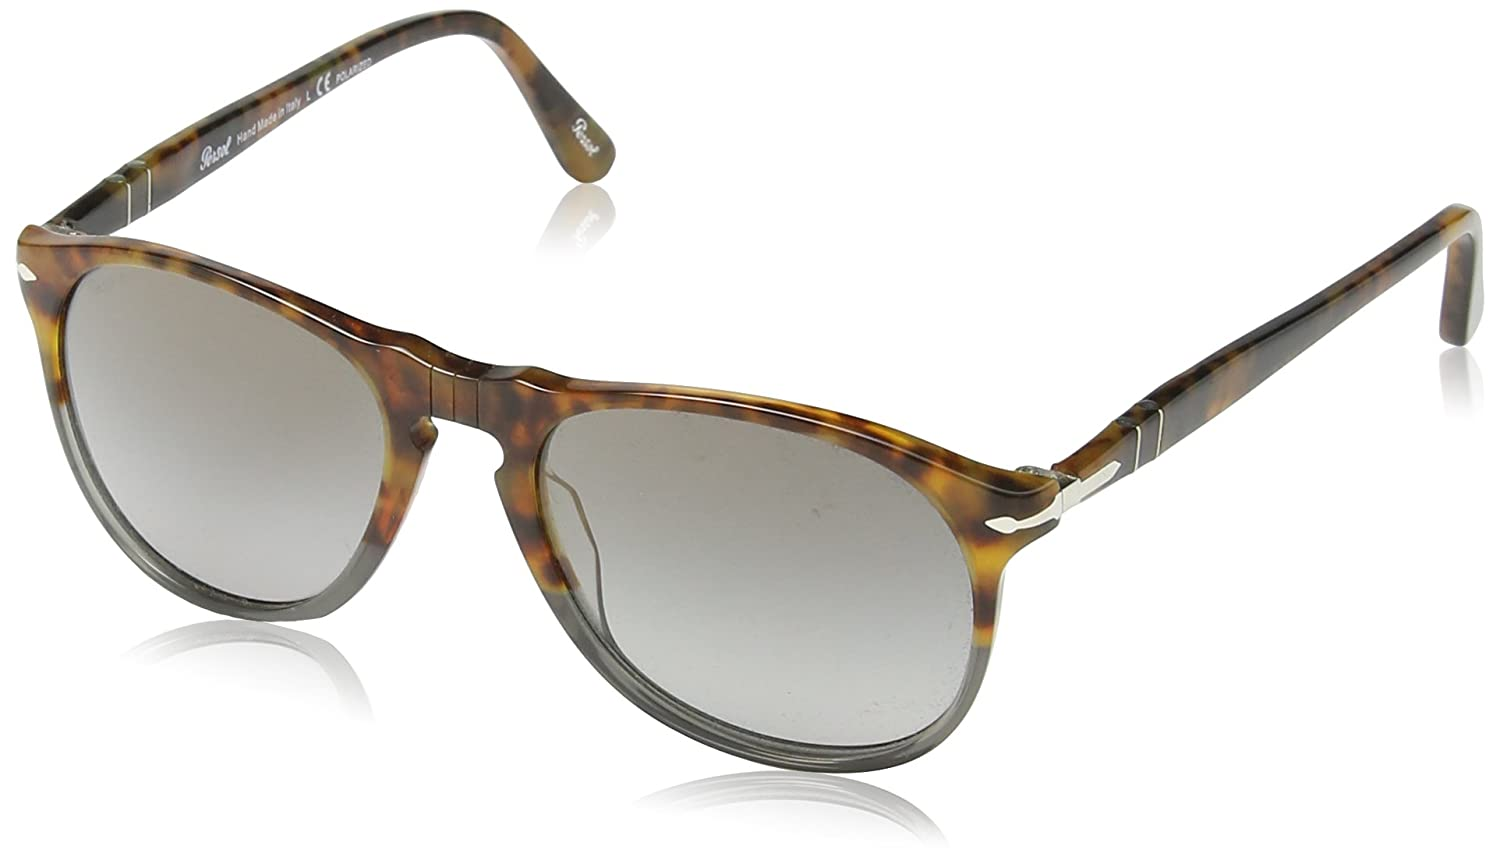 Amazon.com: Persol PO9649S Sunglasses: Clothing